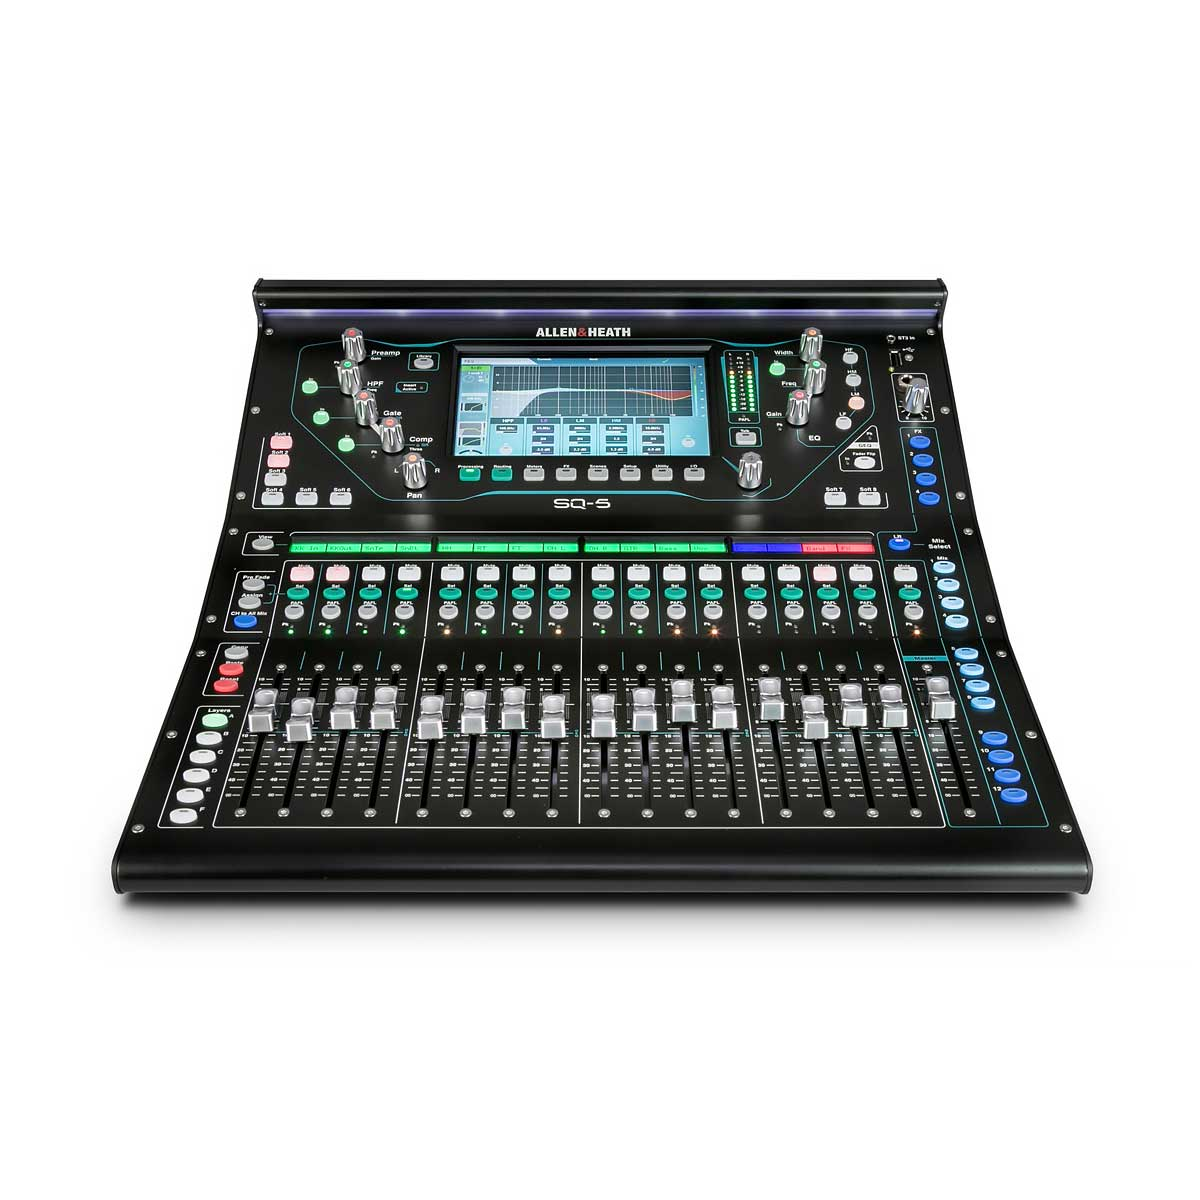 Allen & Heath SQ5 48 channel / 36 bus digital mixer